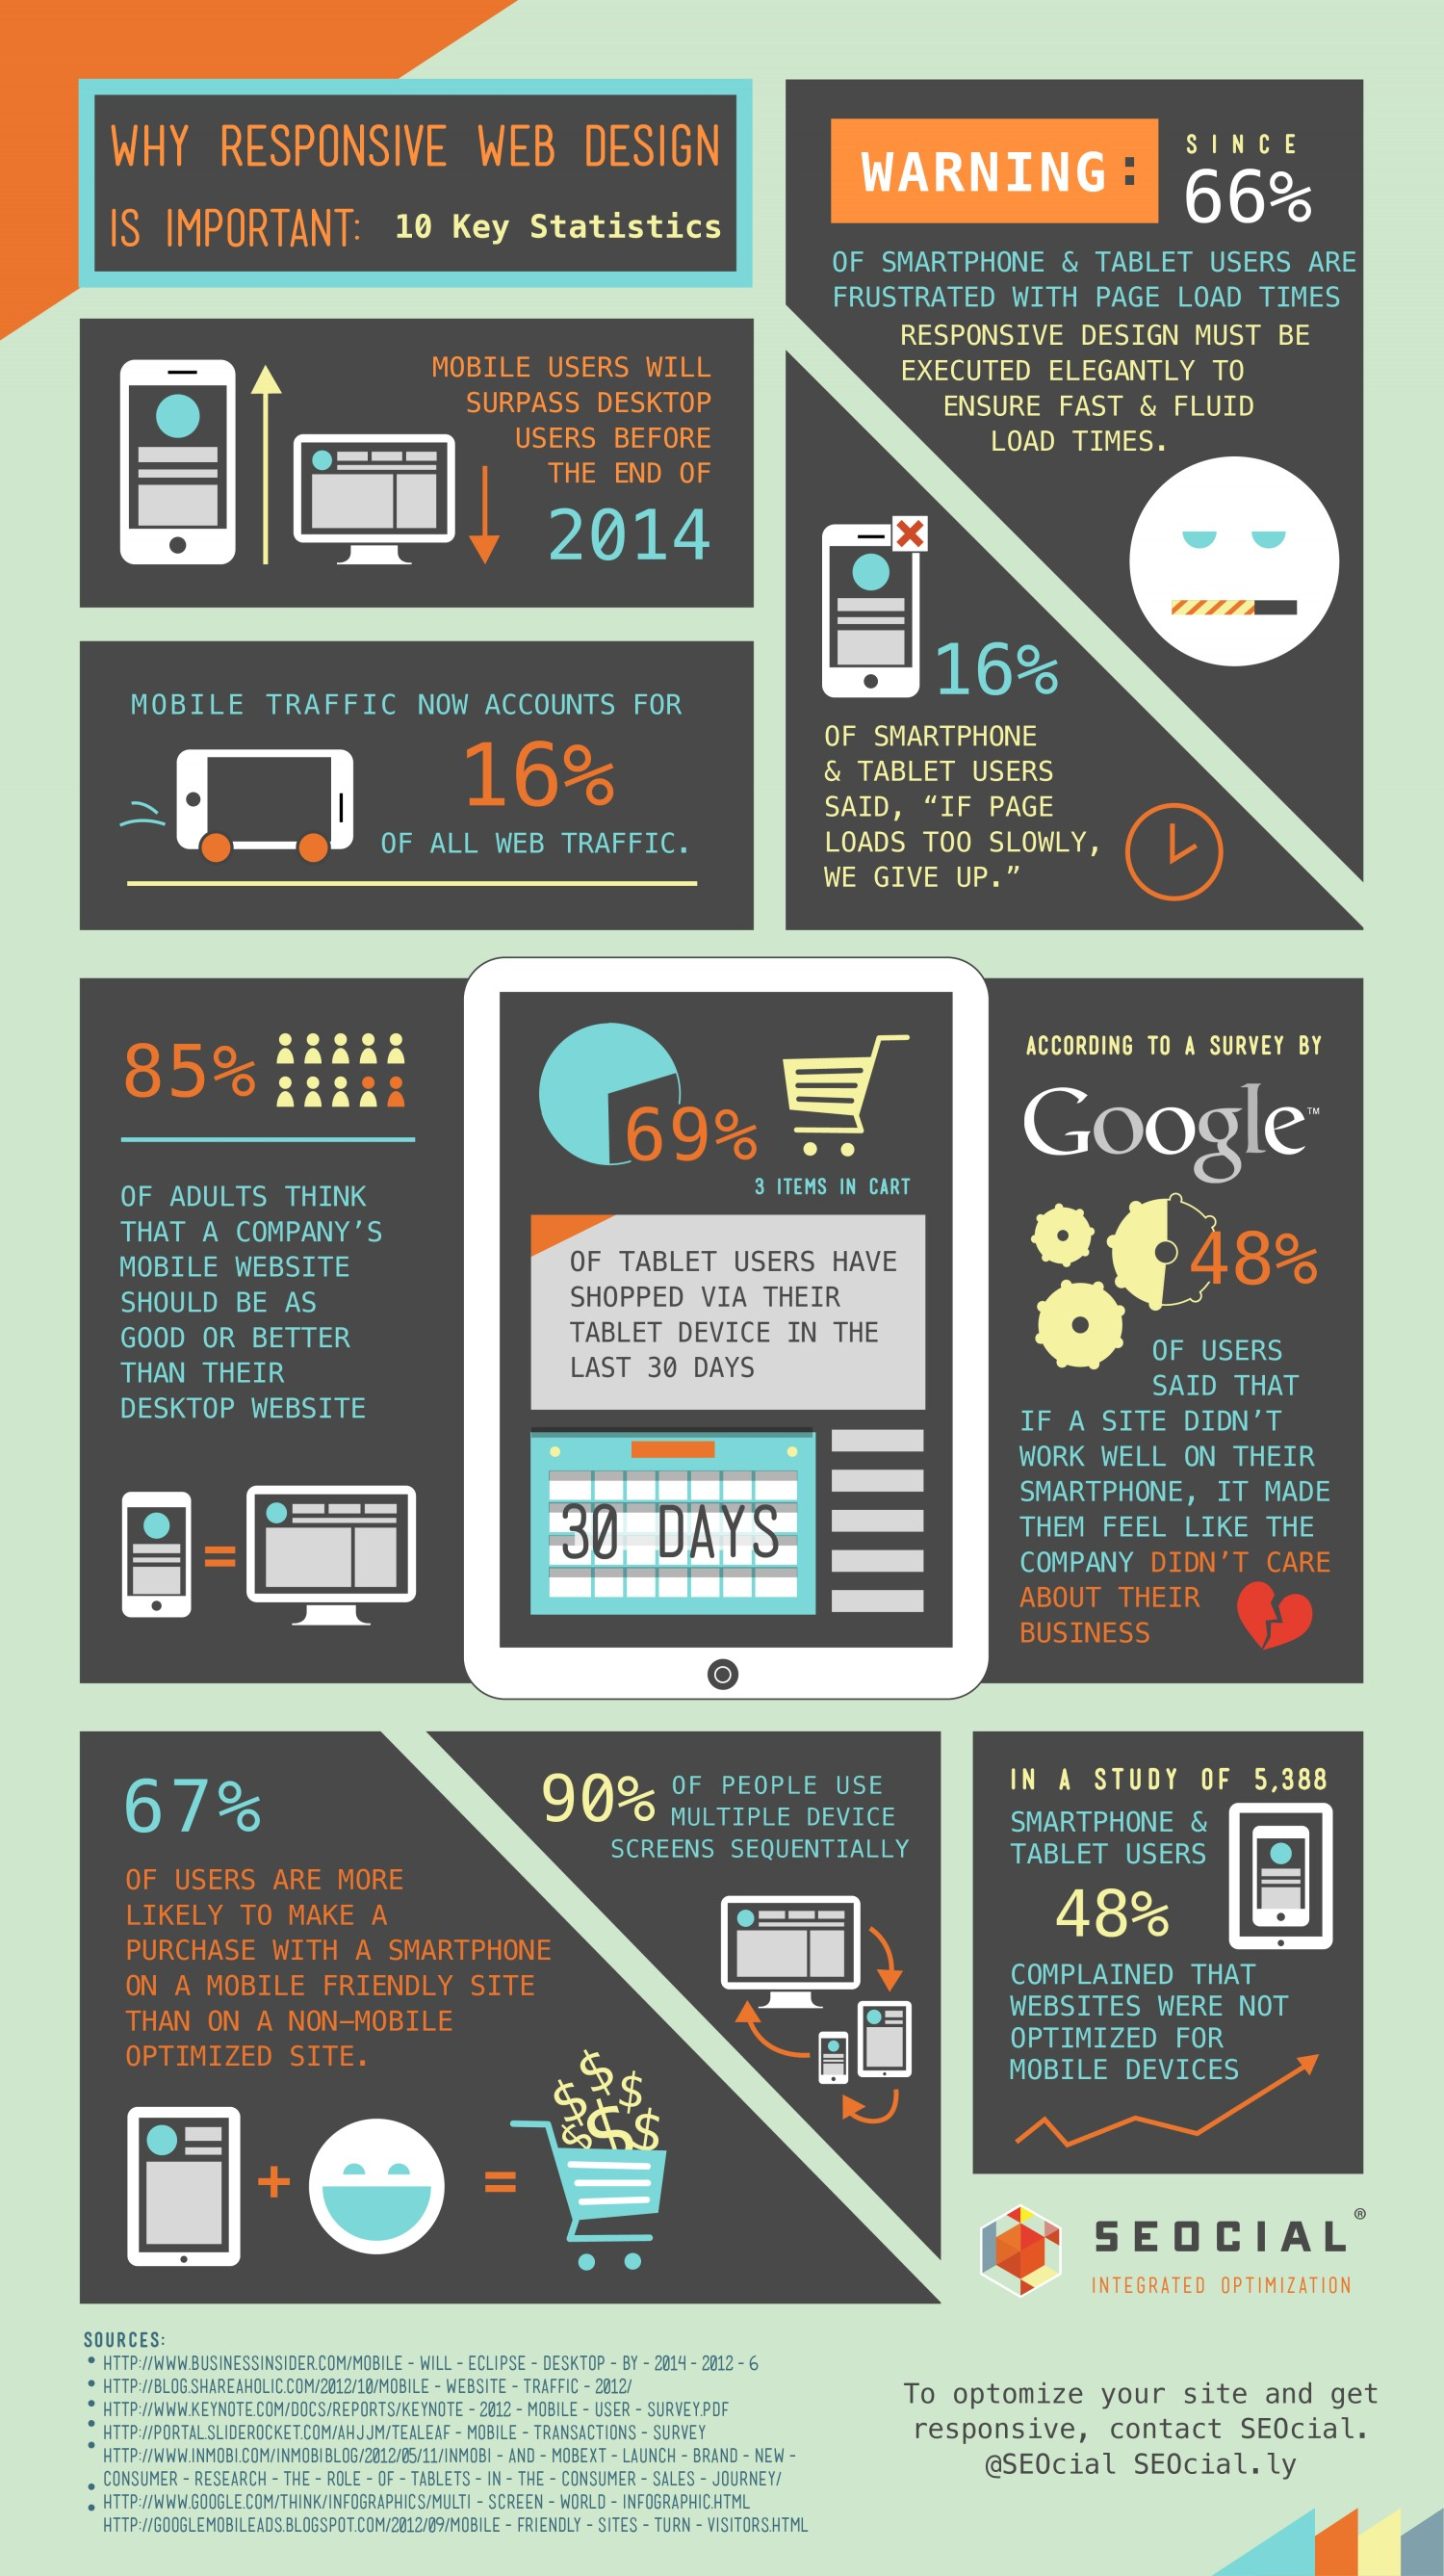 why-responsive-design-is-important-10-key-statistics_52ac8f0317aaa_w1500.png